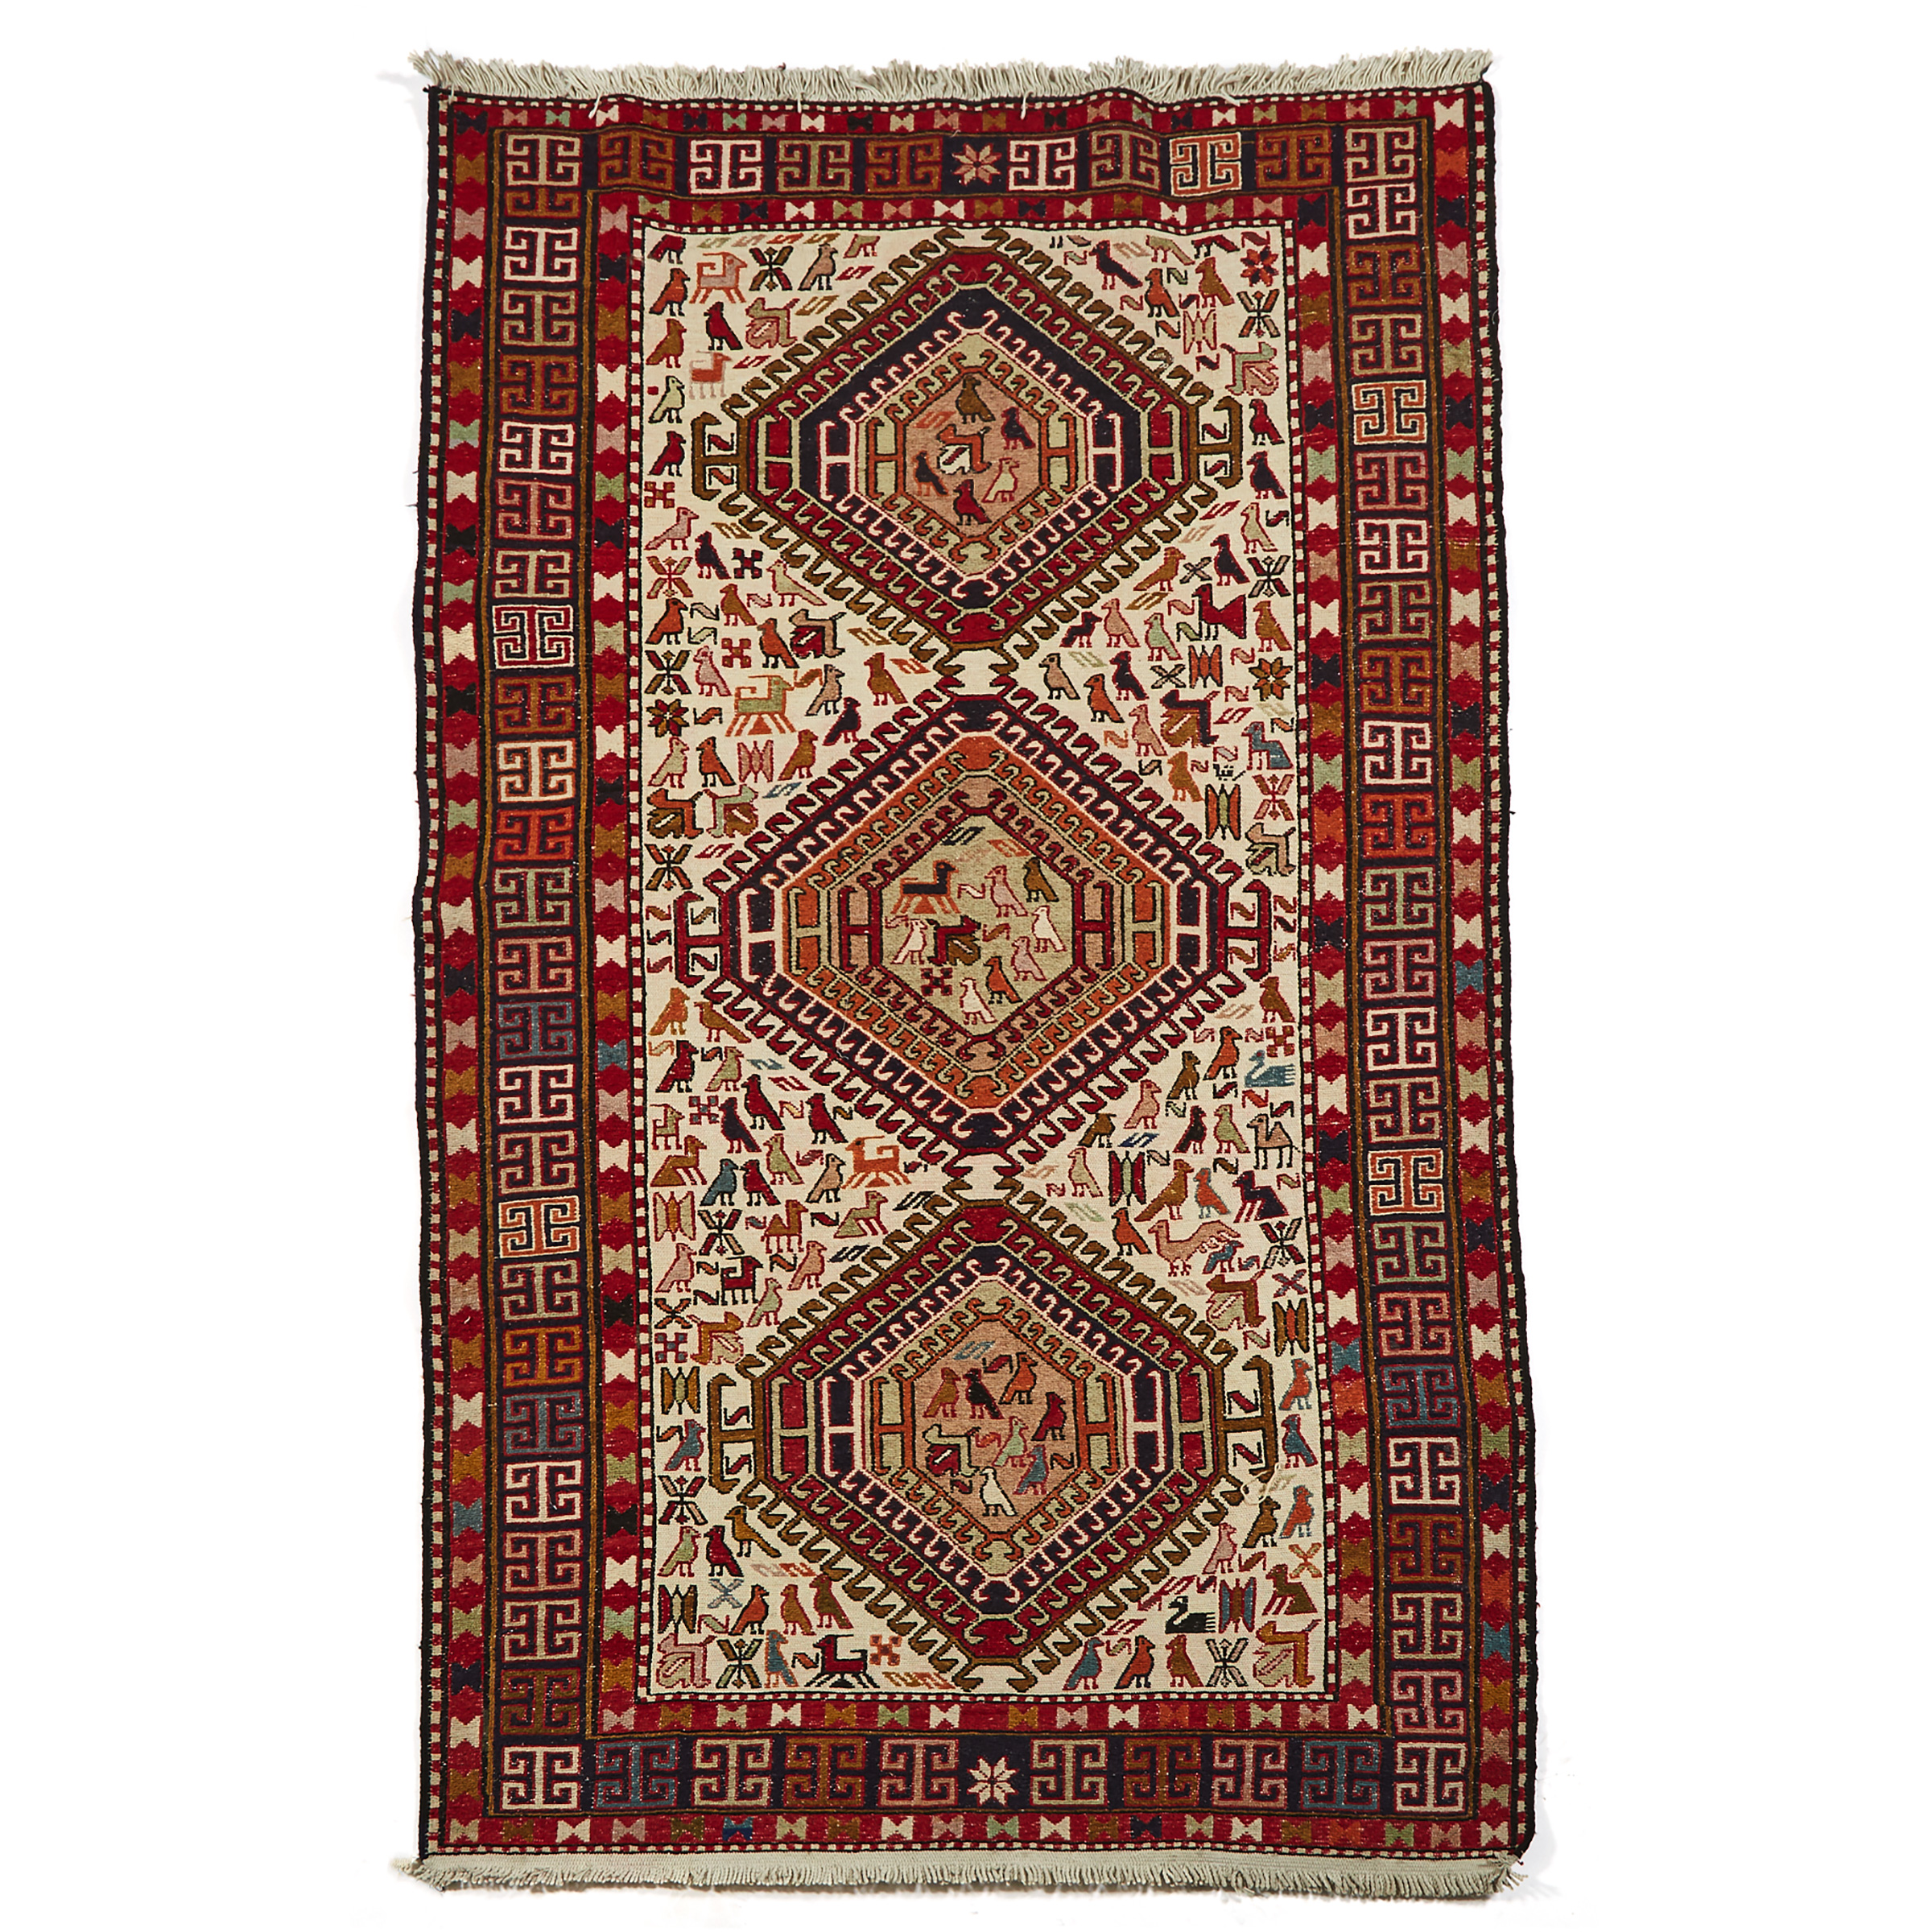 Soumak Rug, late 20th century